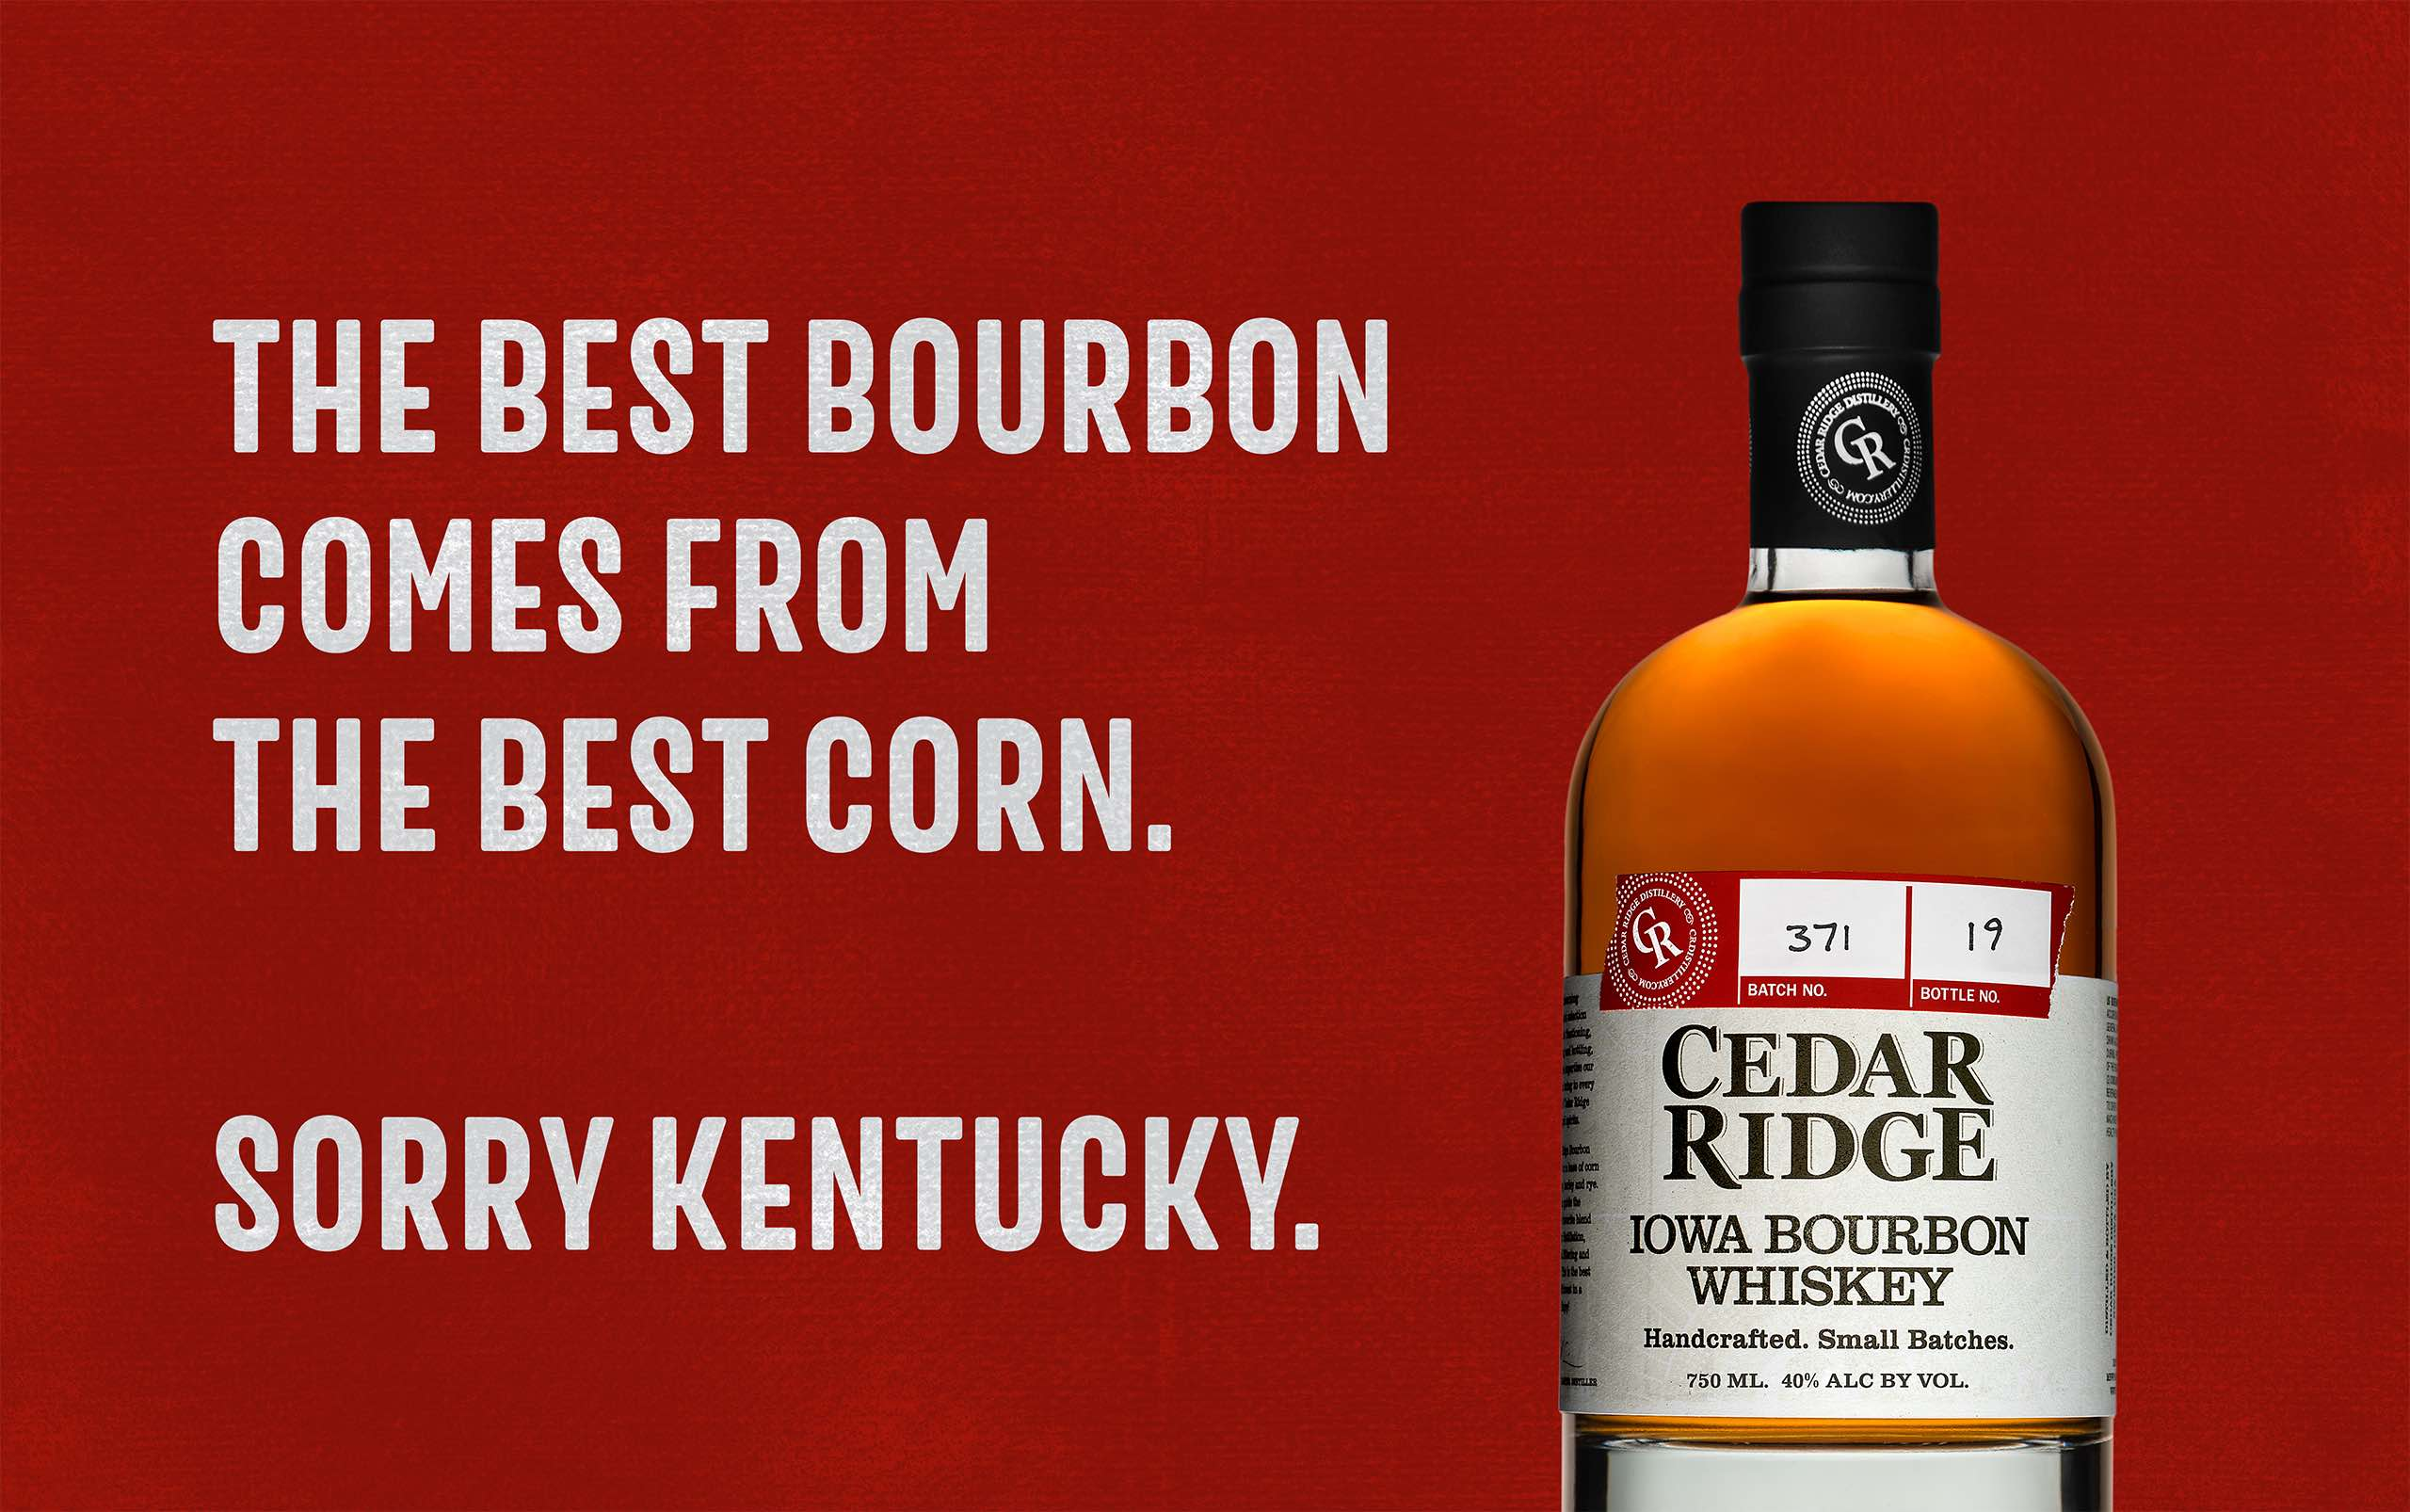 Cedar Ridge Sorry Kentucky ad